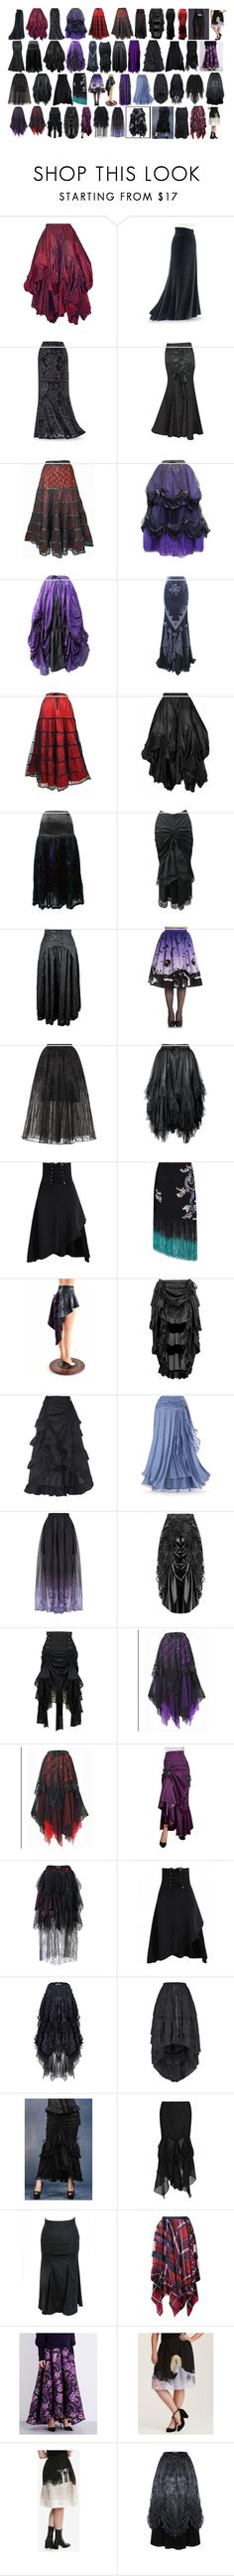 """""""Lanya's Long Skirts #2"""" by switchback13 on Polyvore featuring Hell Bunny, Elie Saab, RIXO London, California Costumes, Sacai, Temperley London and Torrid"""